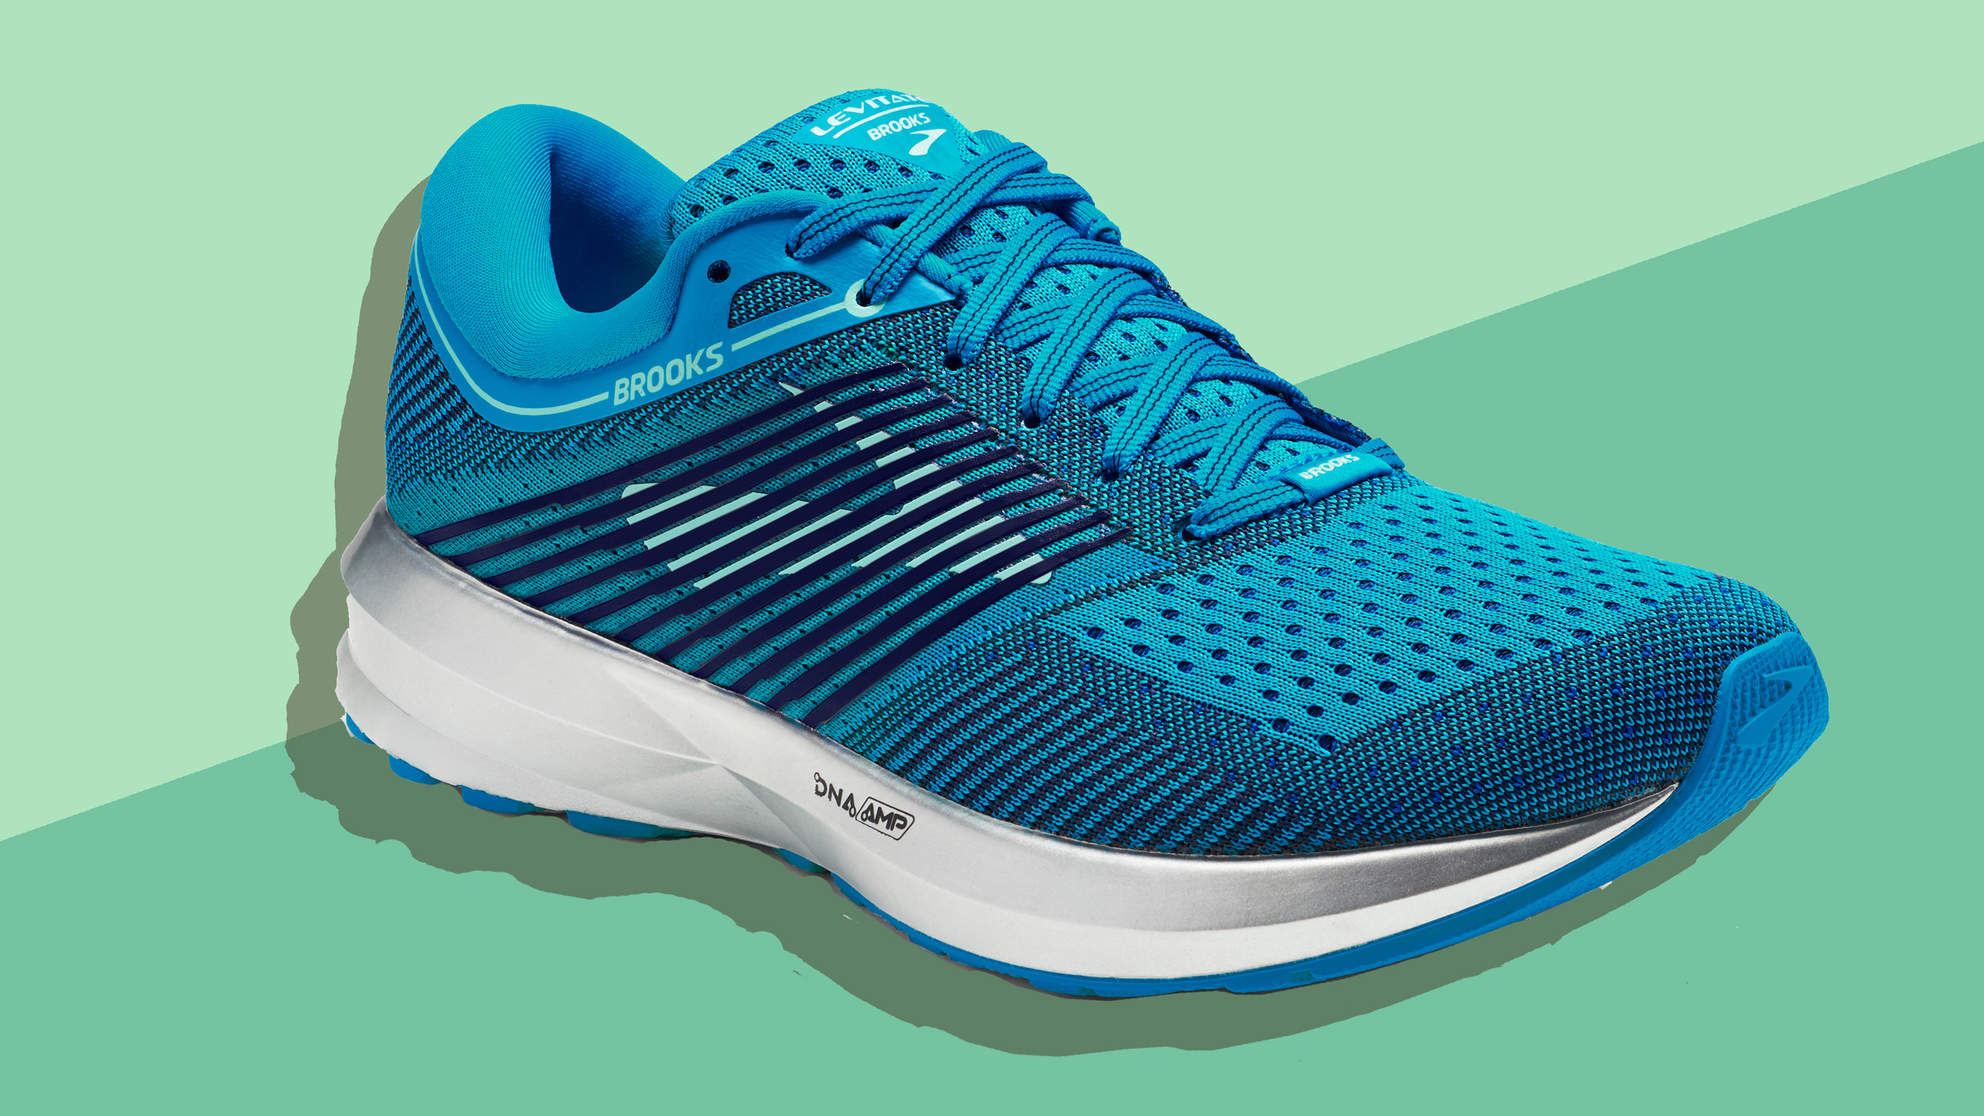 61940f96143 The New Brooks Levitate Promises to Help You Run Faster - Health